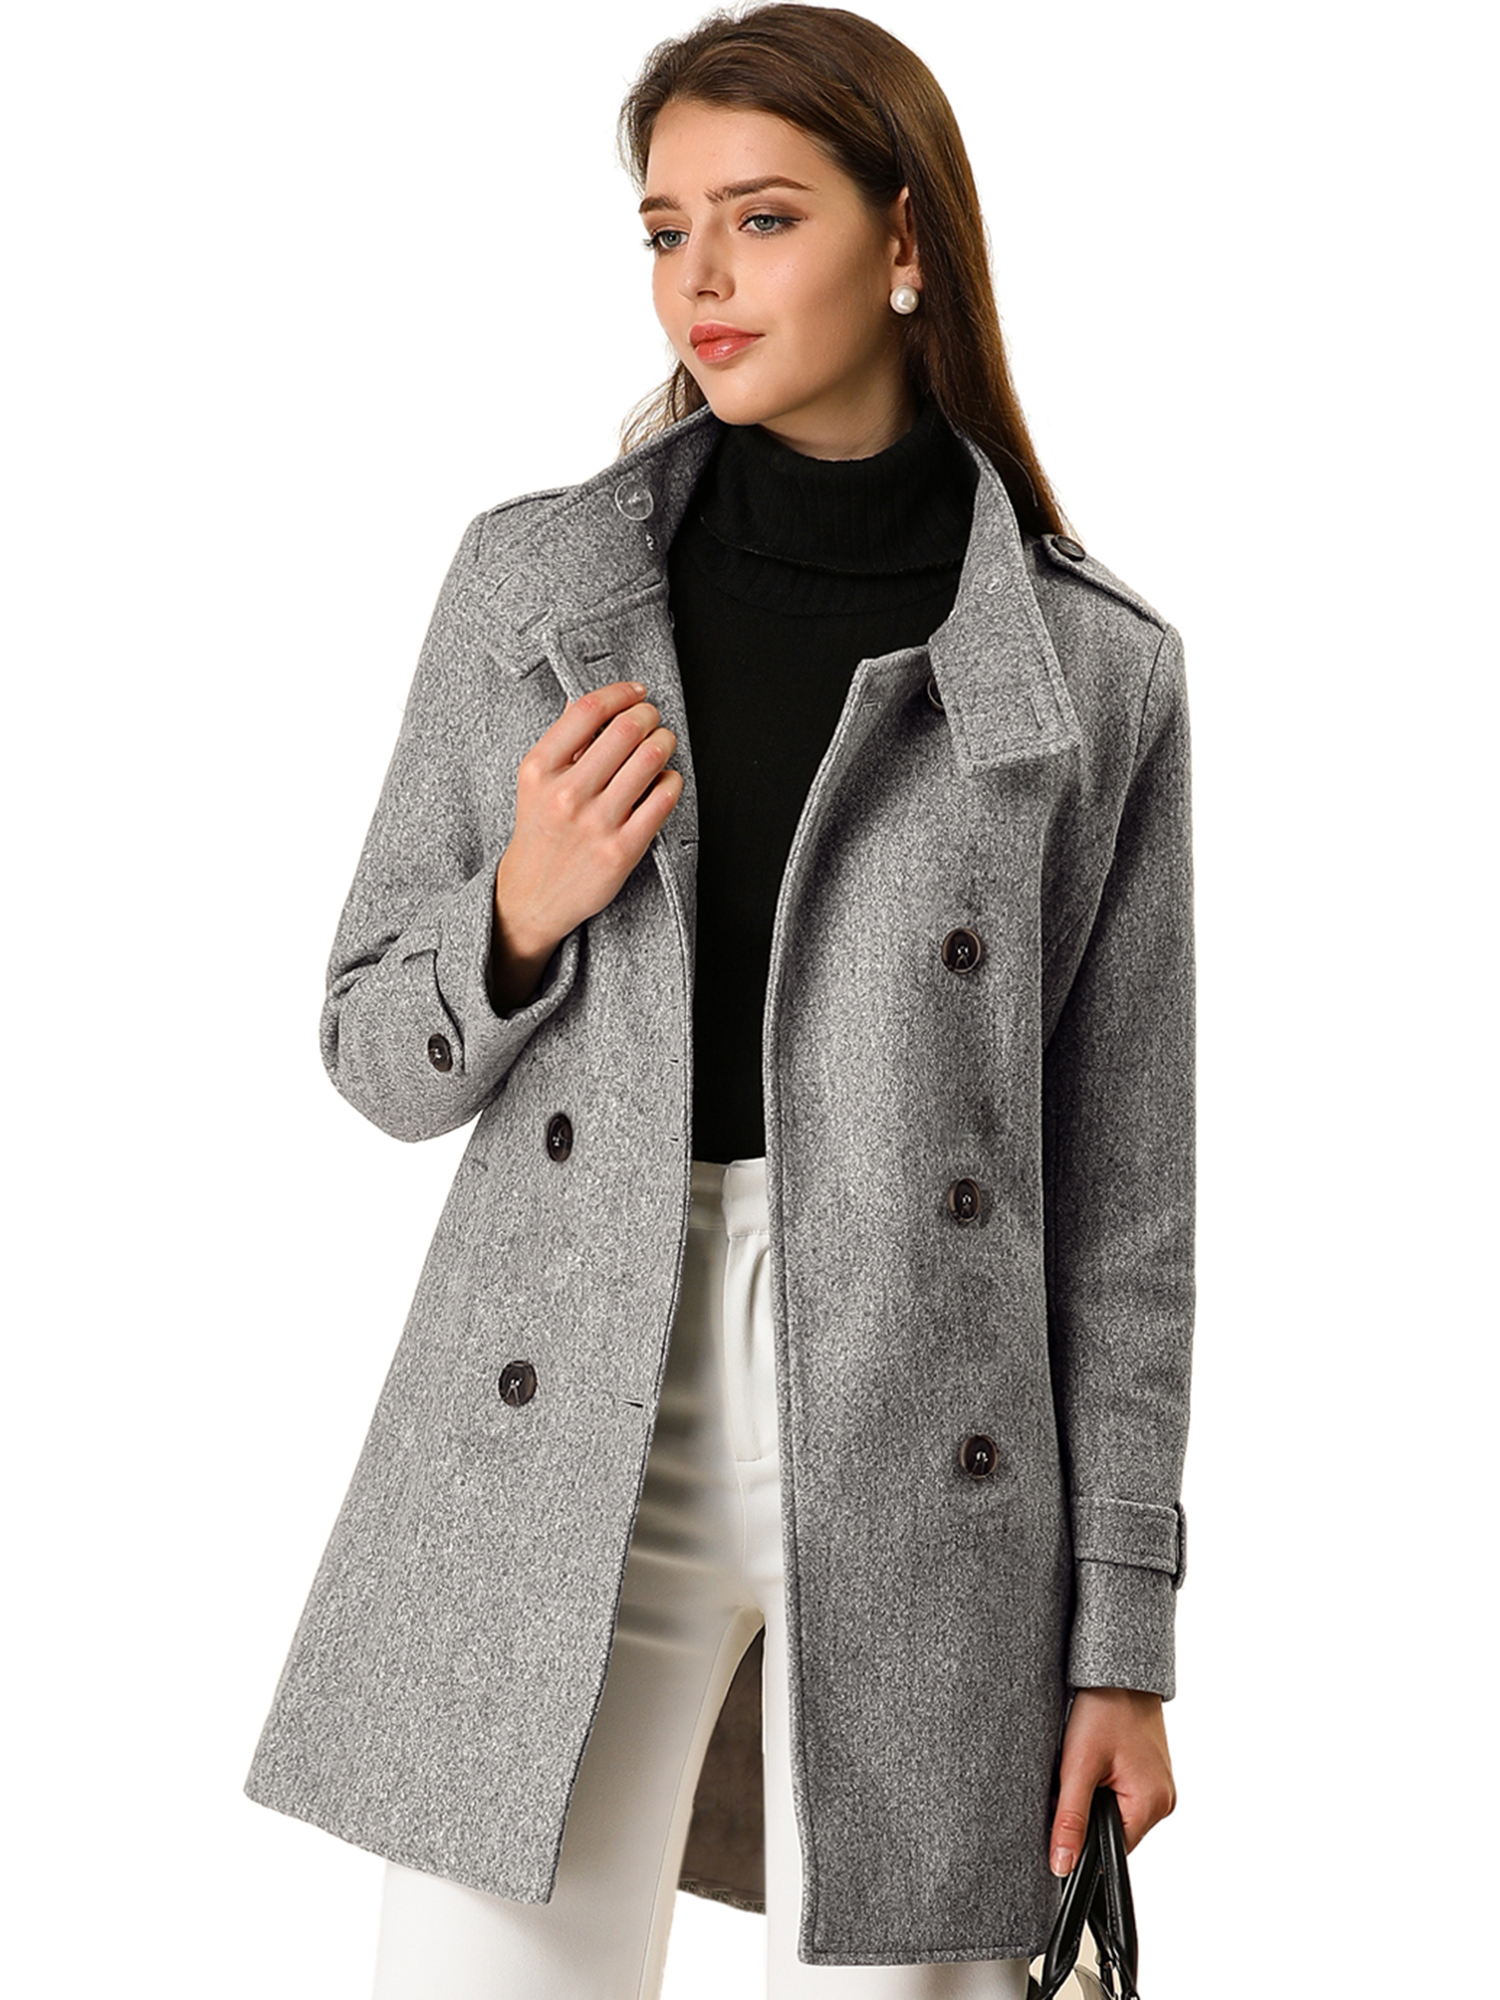 Women's Winter Stand Collar Double Breasted Outwear Trench Coat Gray XL